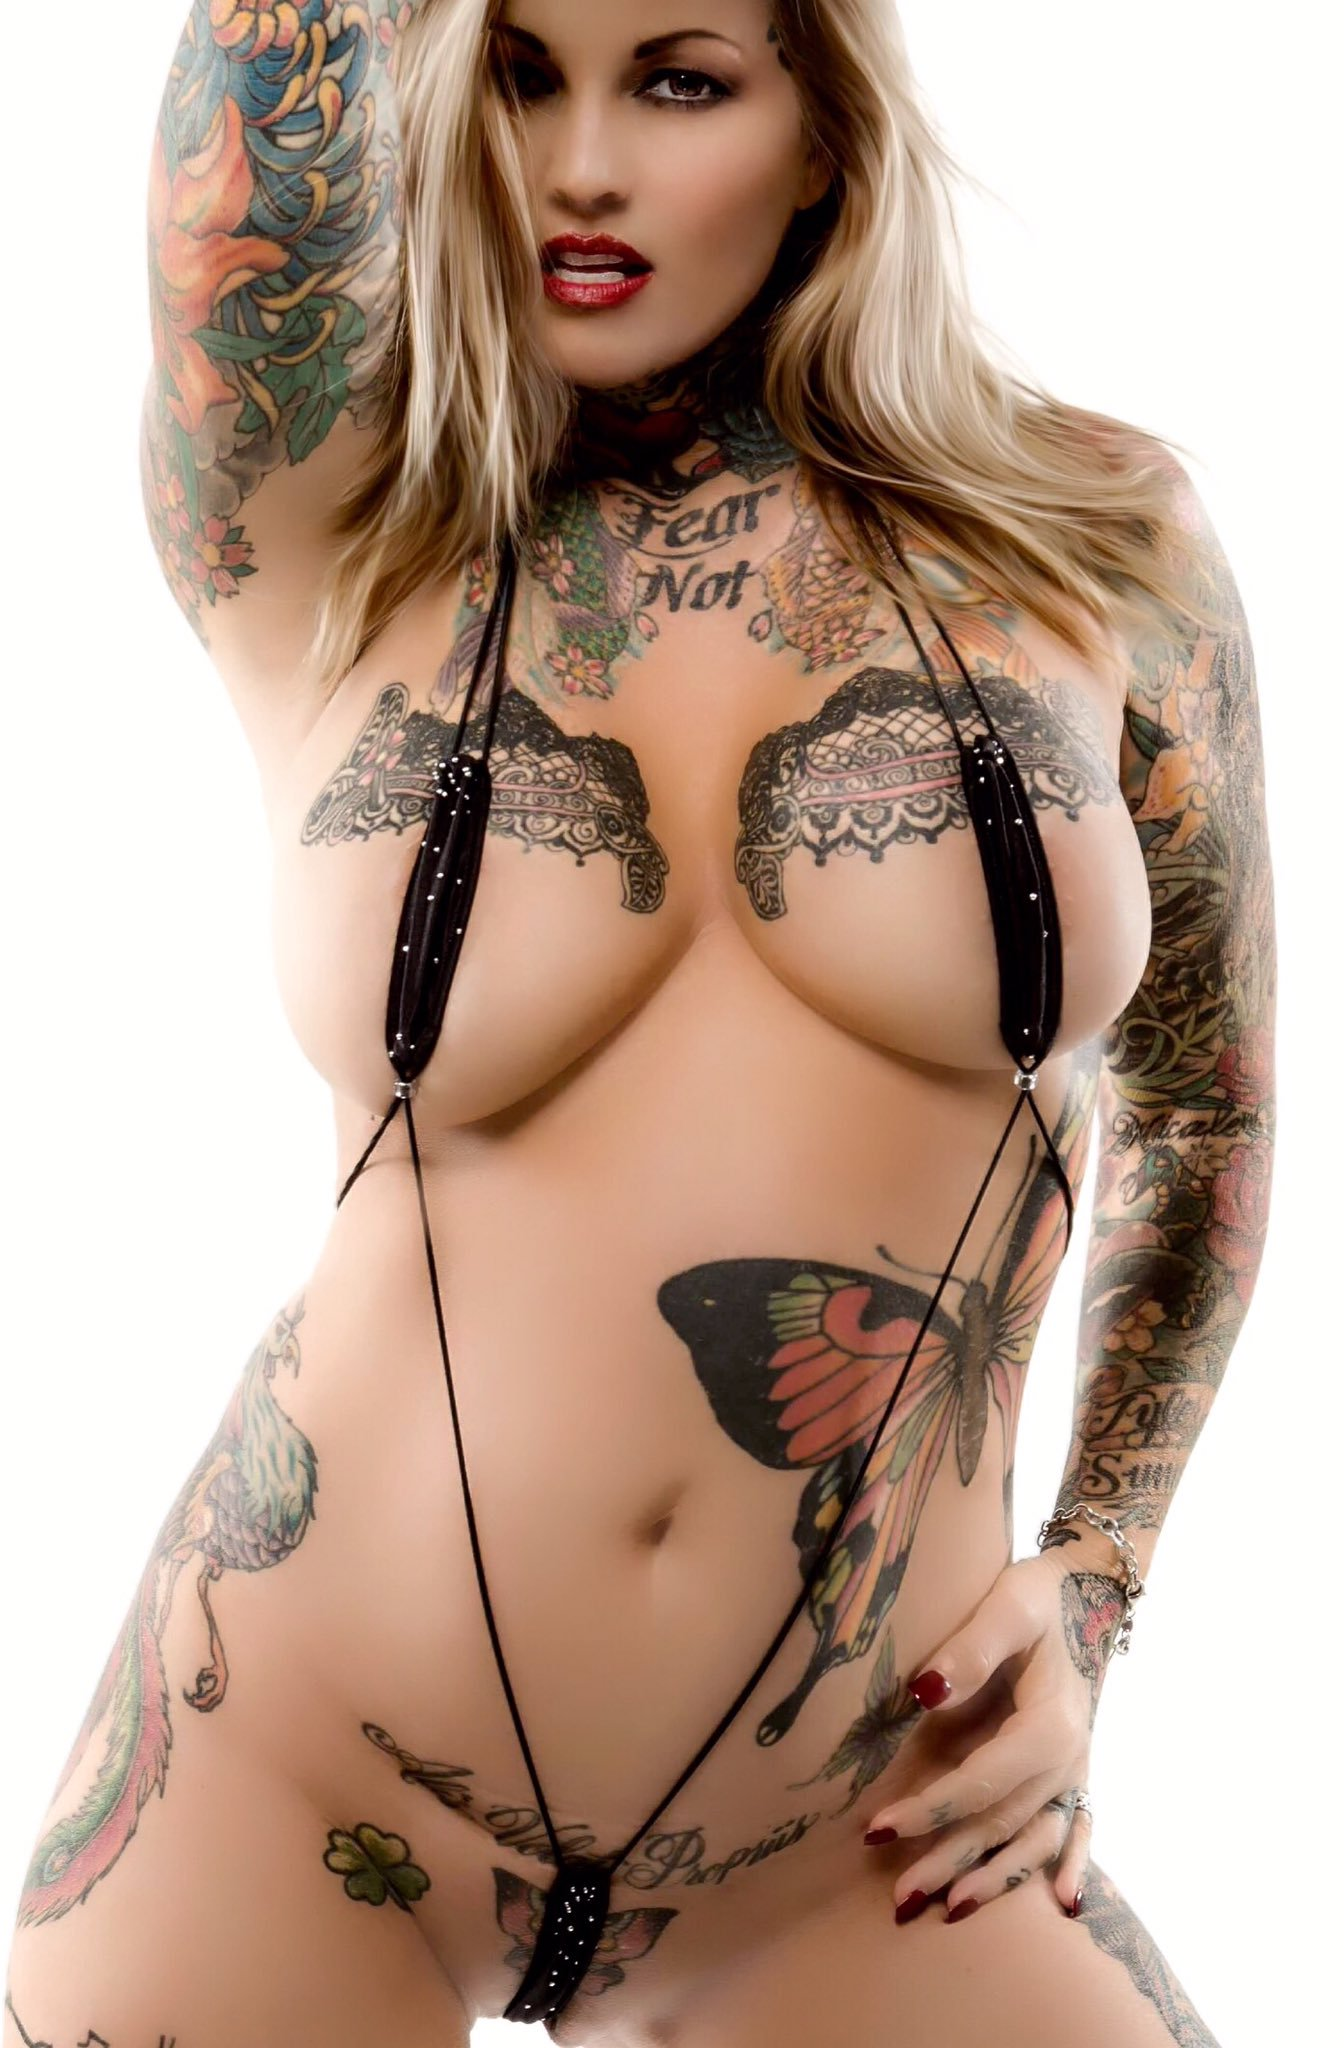 Heavily tattooed bitch only gets off to her vibrator and she is so hot